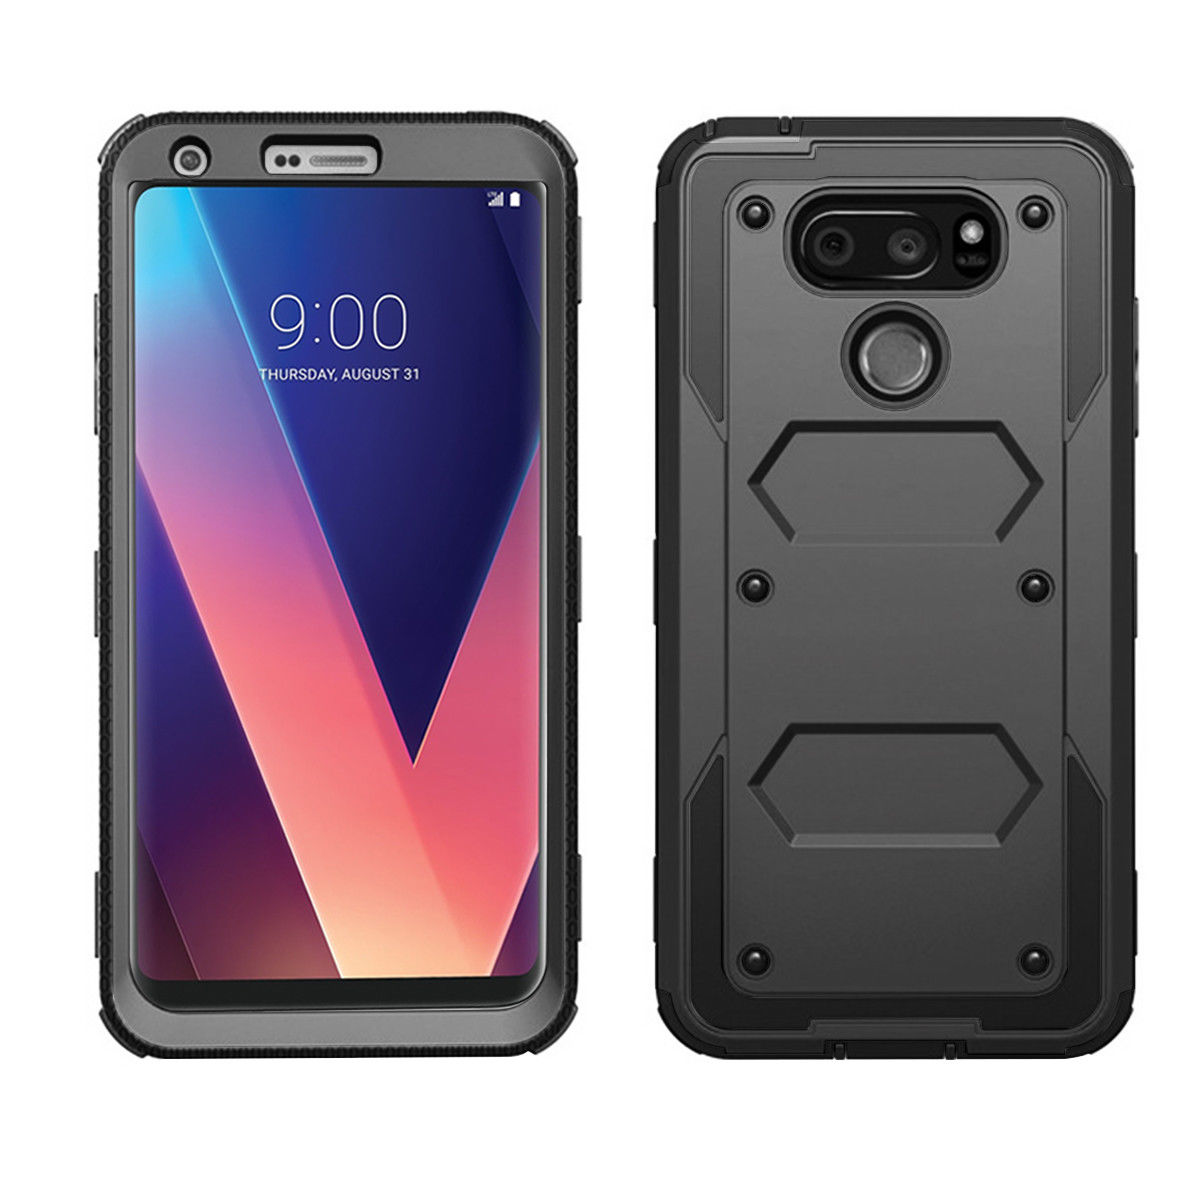 official photos e45e6 6349a LG V30 V350 ThinQ Case, Mignova Heavy Duty Full Body Protective Case with  Kickstand, Build-in Screen Protector and Belt Swivel Clip for LG V30/LG V30  ...